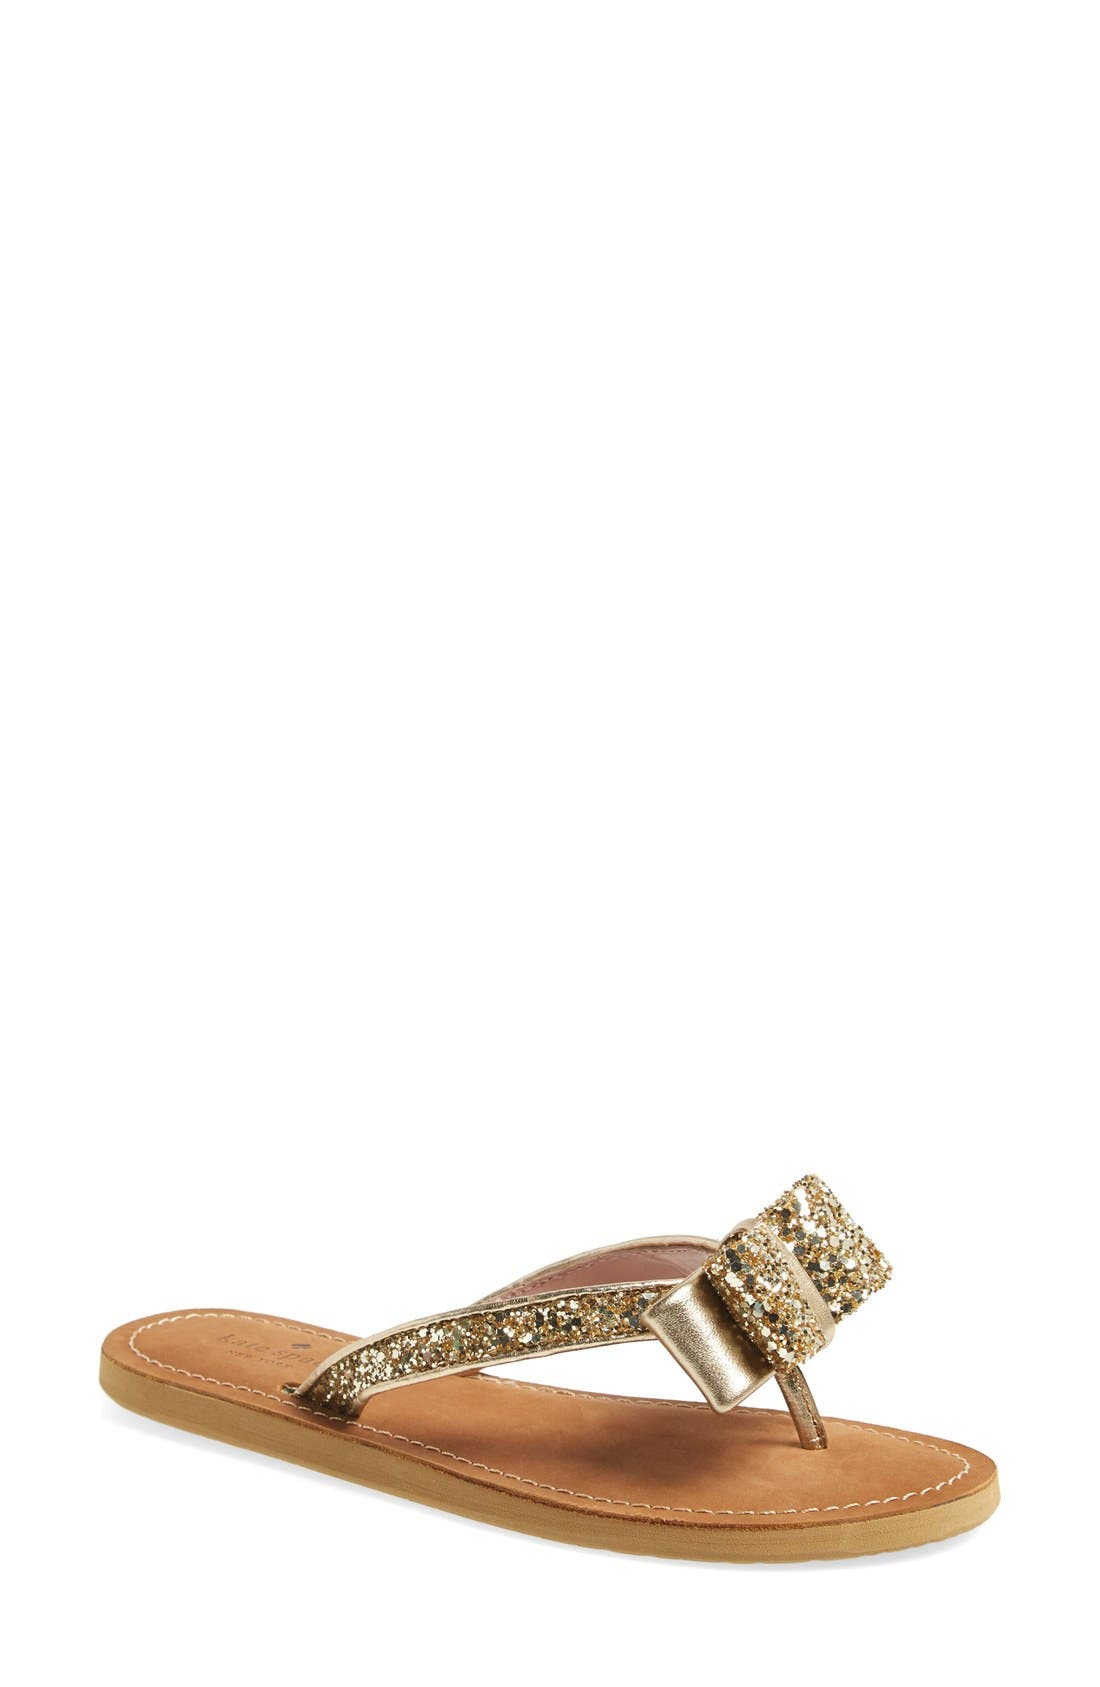 kate spade new york 'icarda' glitter flip flop (Women)